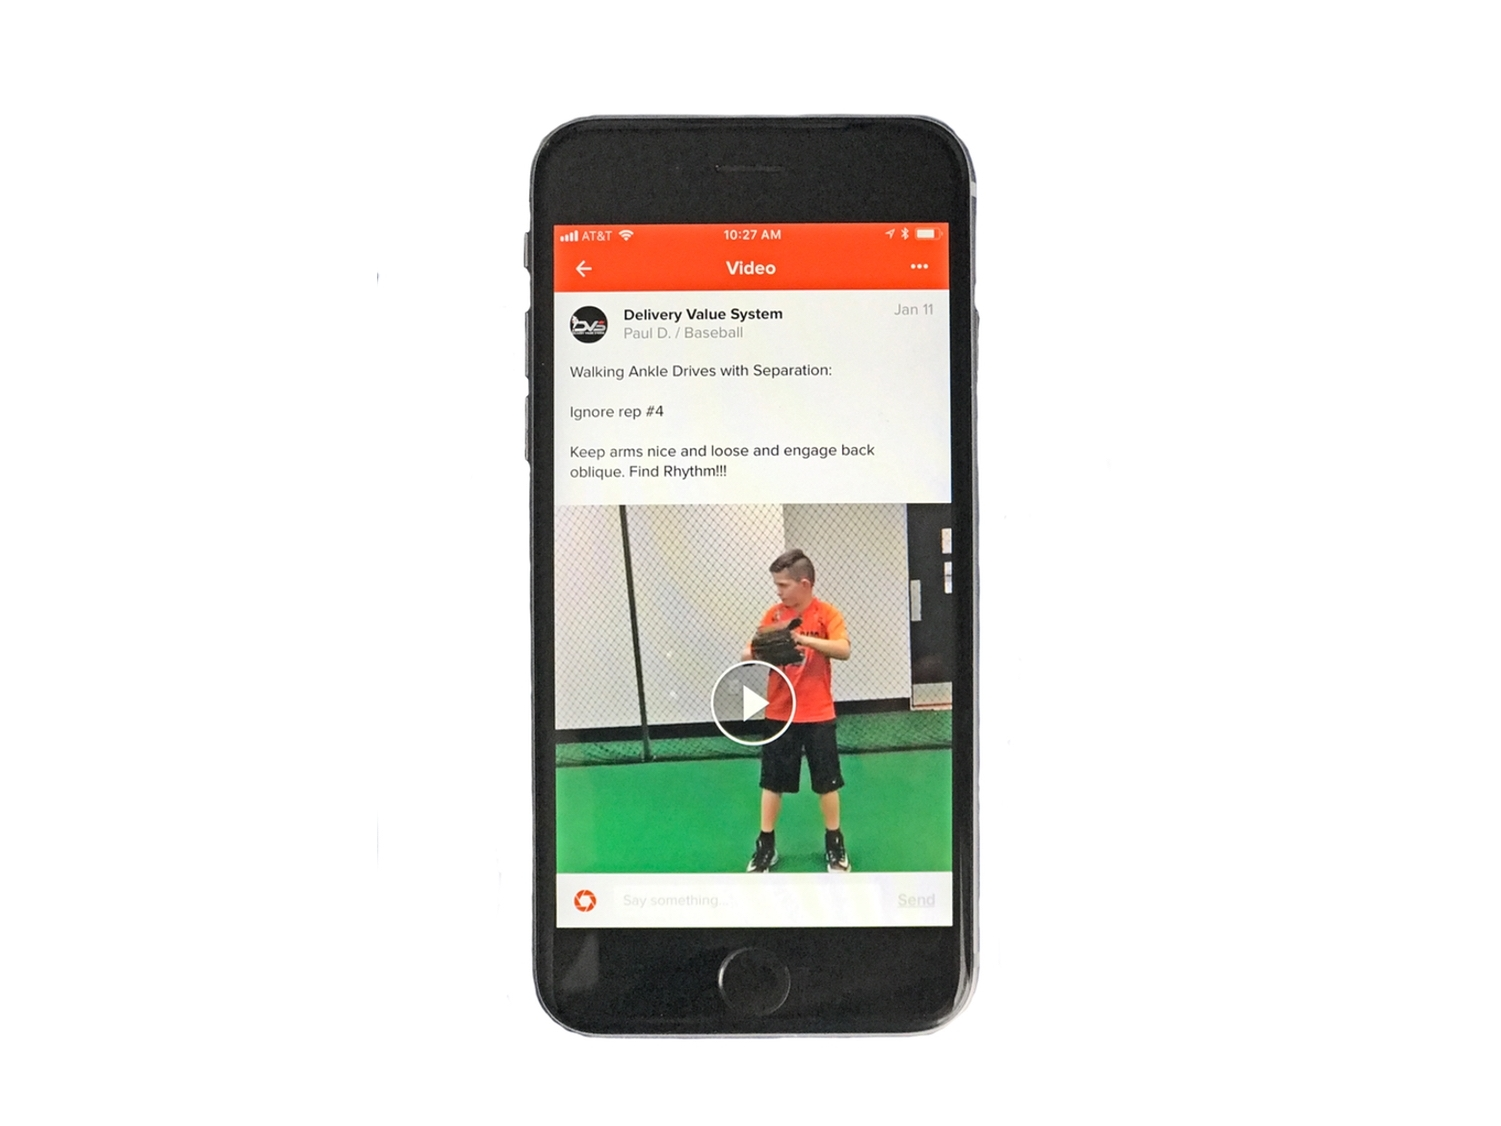 Consistent Communication - A coach will guide you each step of the way as you progress through your online training program. Our online clients can upload their videos from their phone, tablet, or computer right into their personalized training space and get instant feedback from their coach.